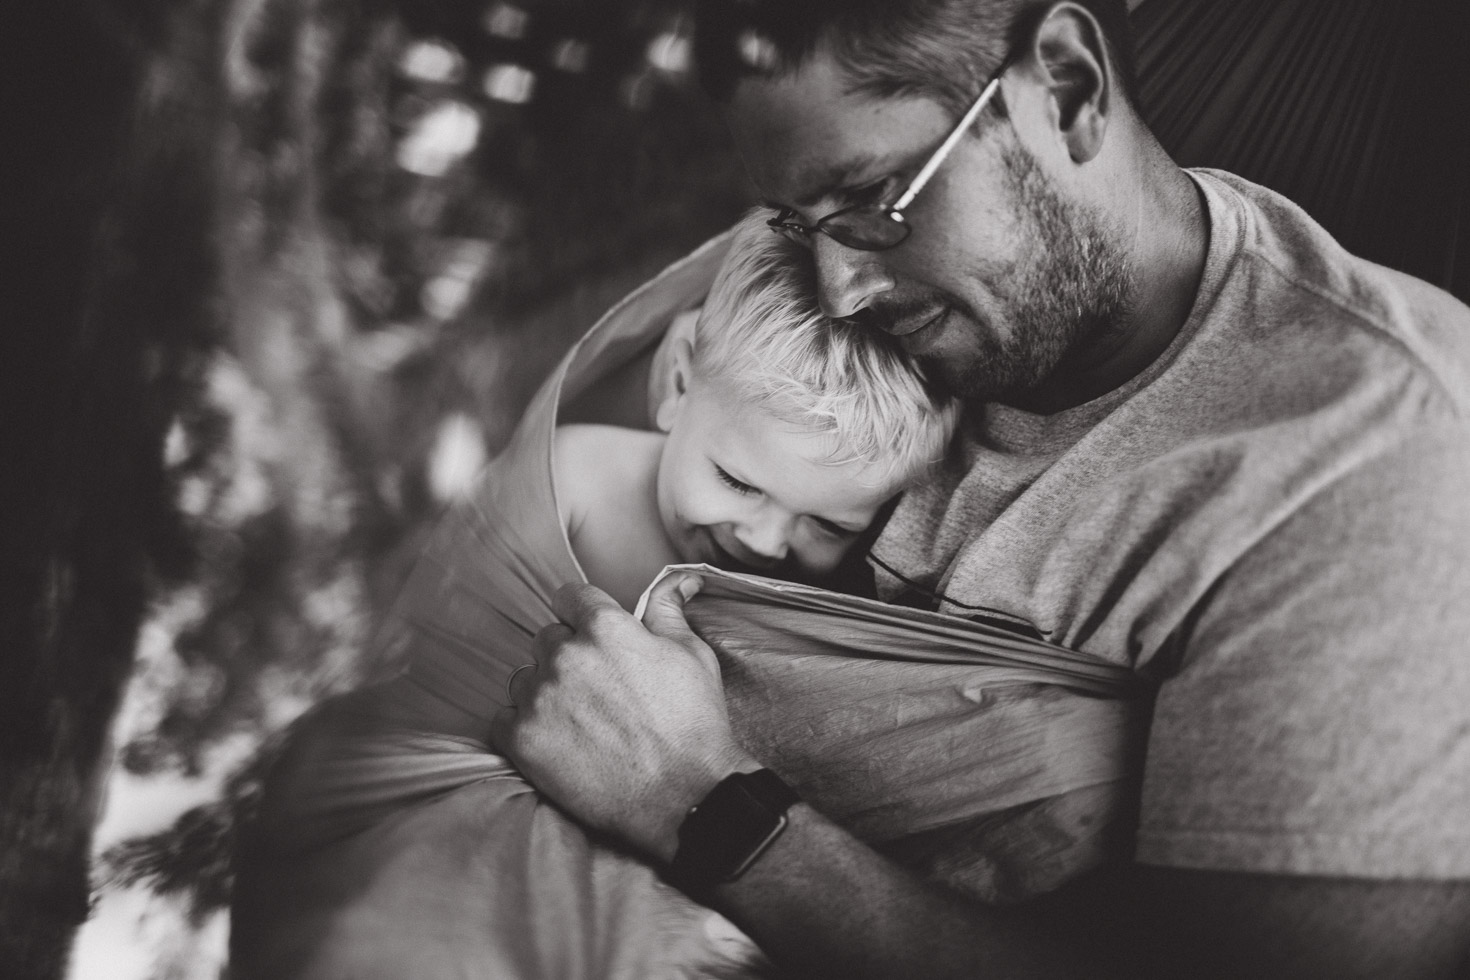 Father embracing son in loving connection in hammock; black and white portrait